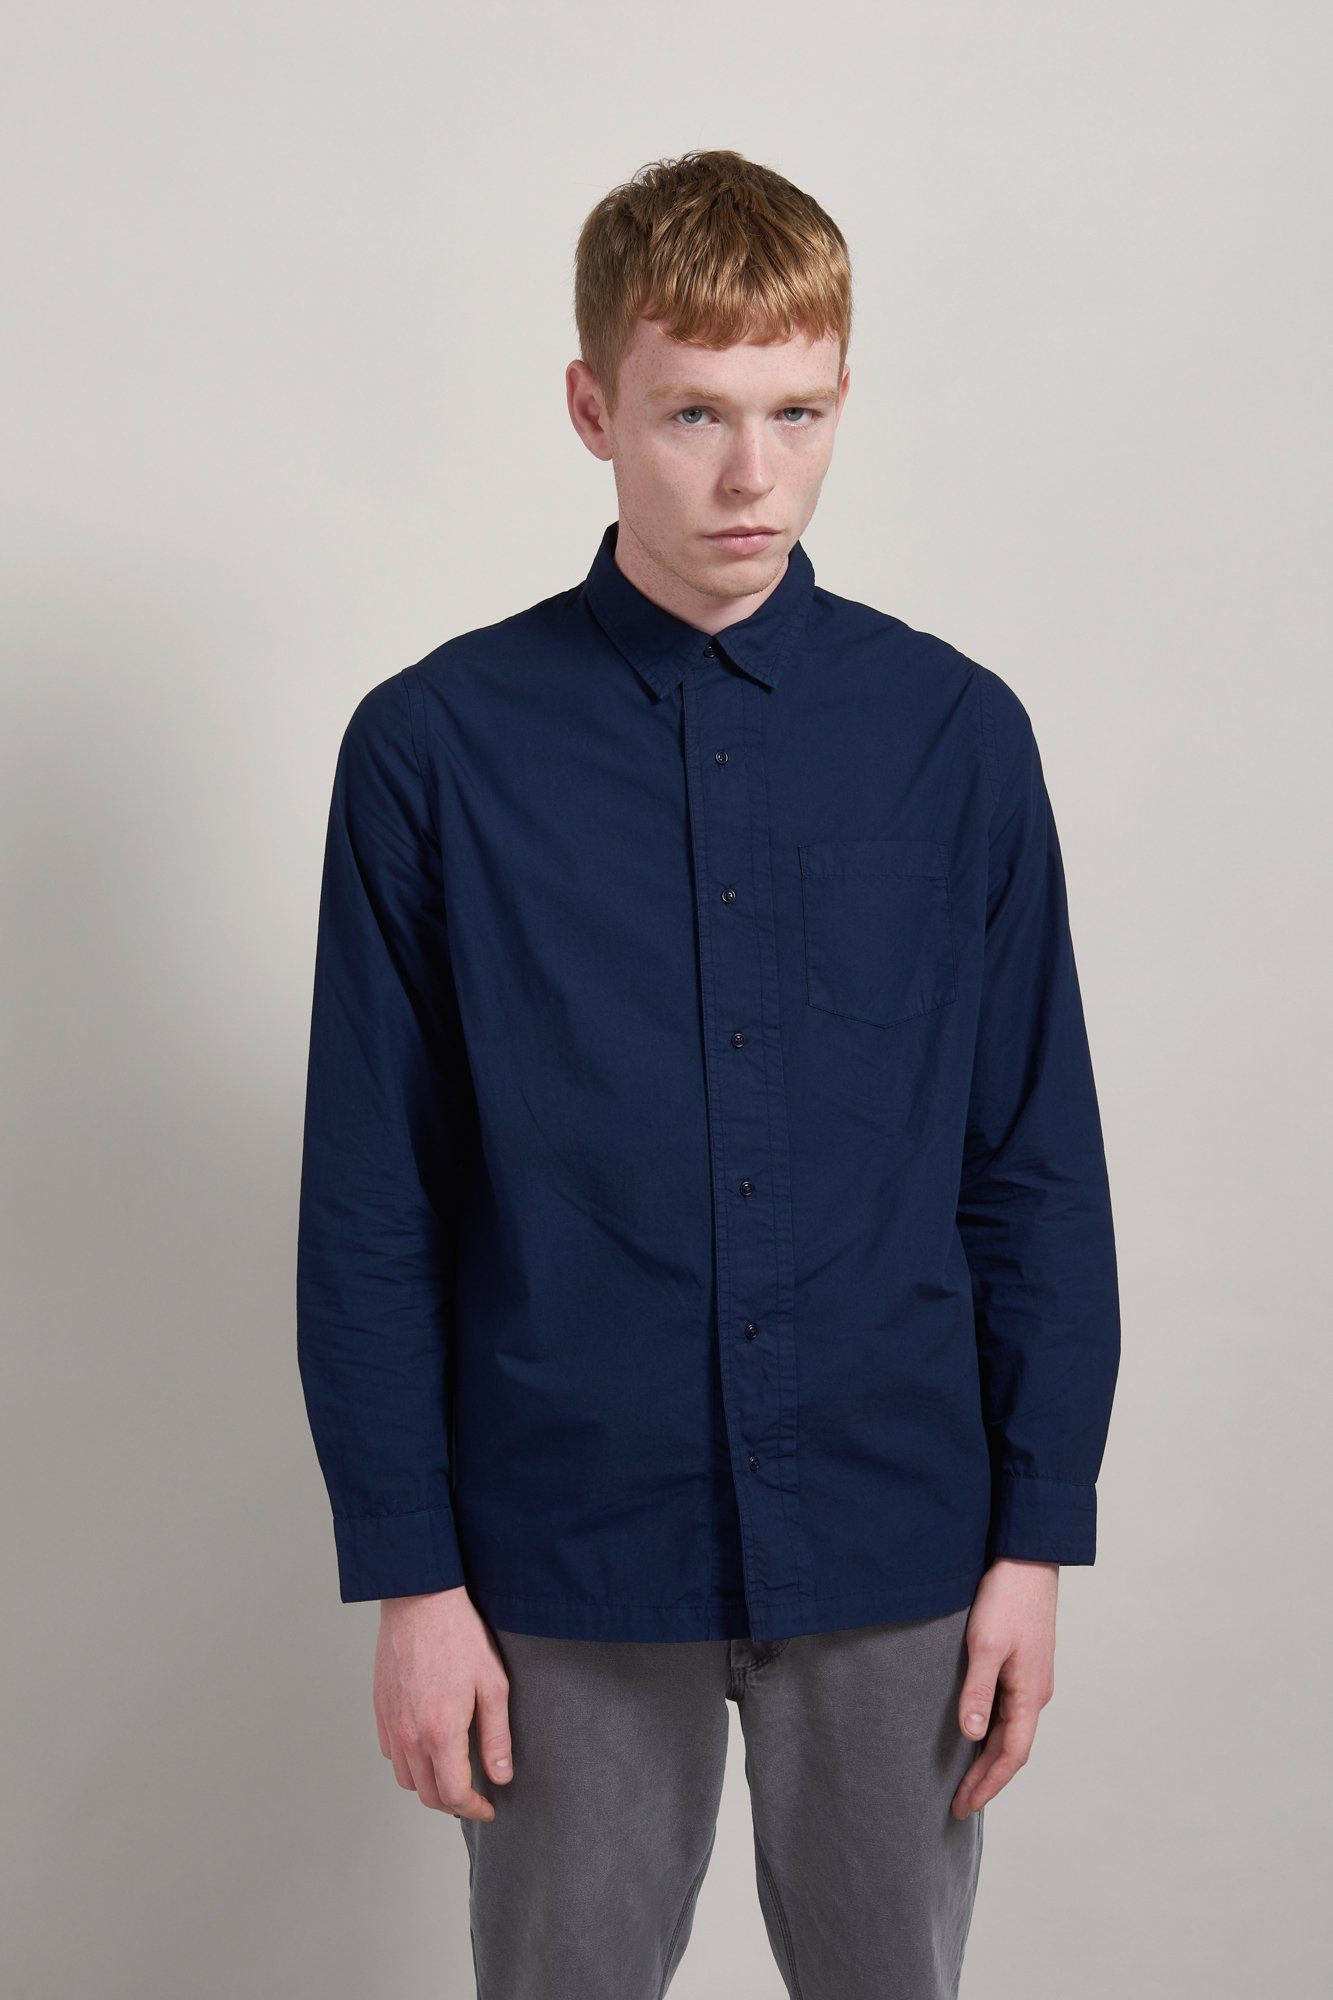 Shirt - TOMAS Organic Cotton Shirt Indigo